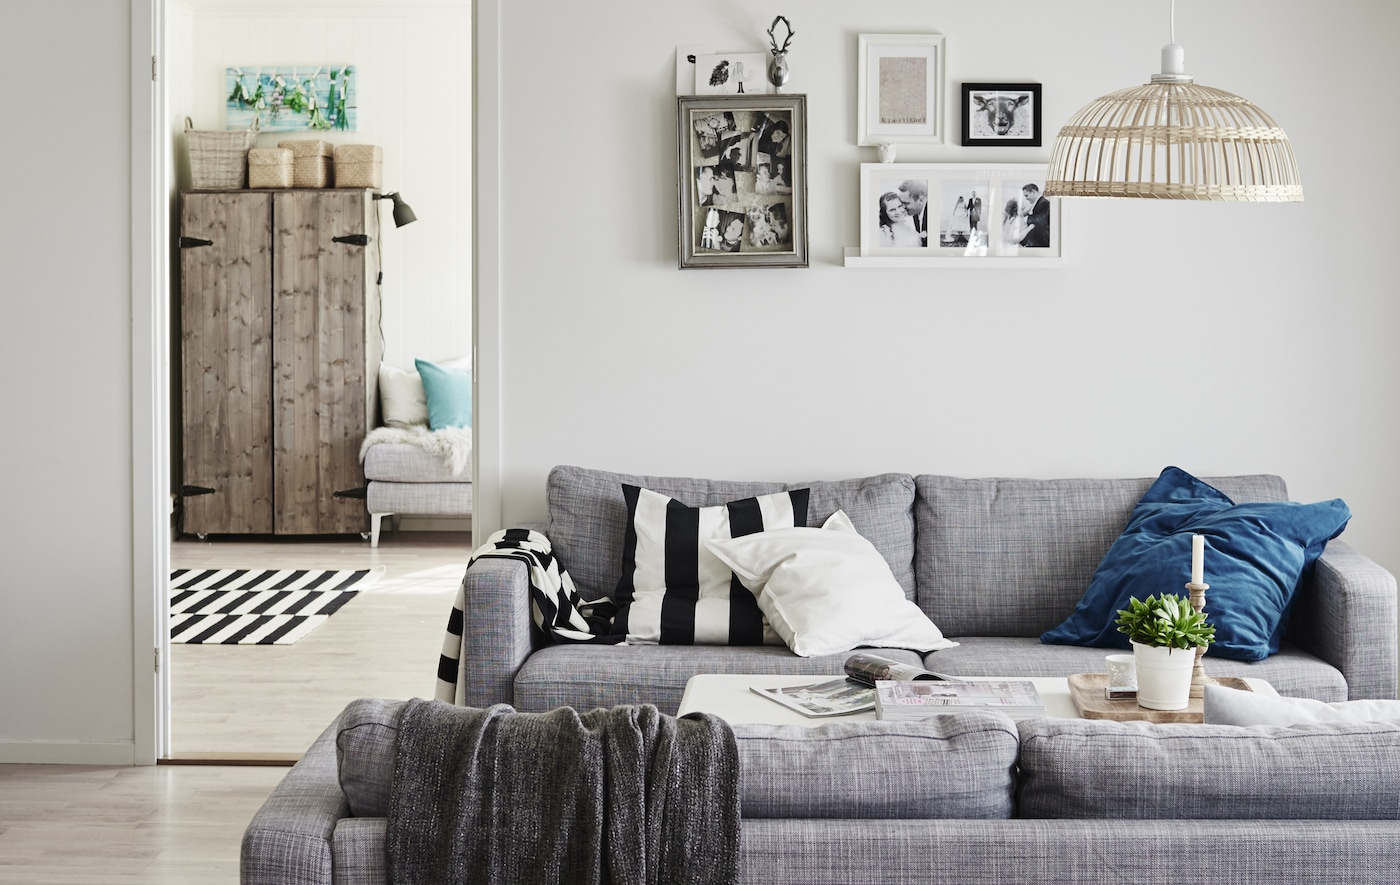 A home with blue accents throughout